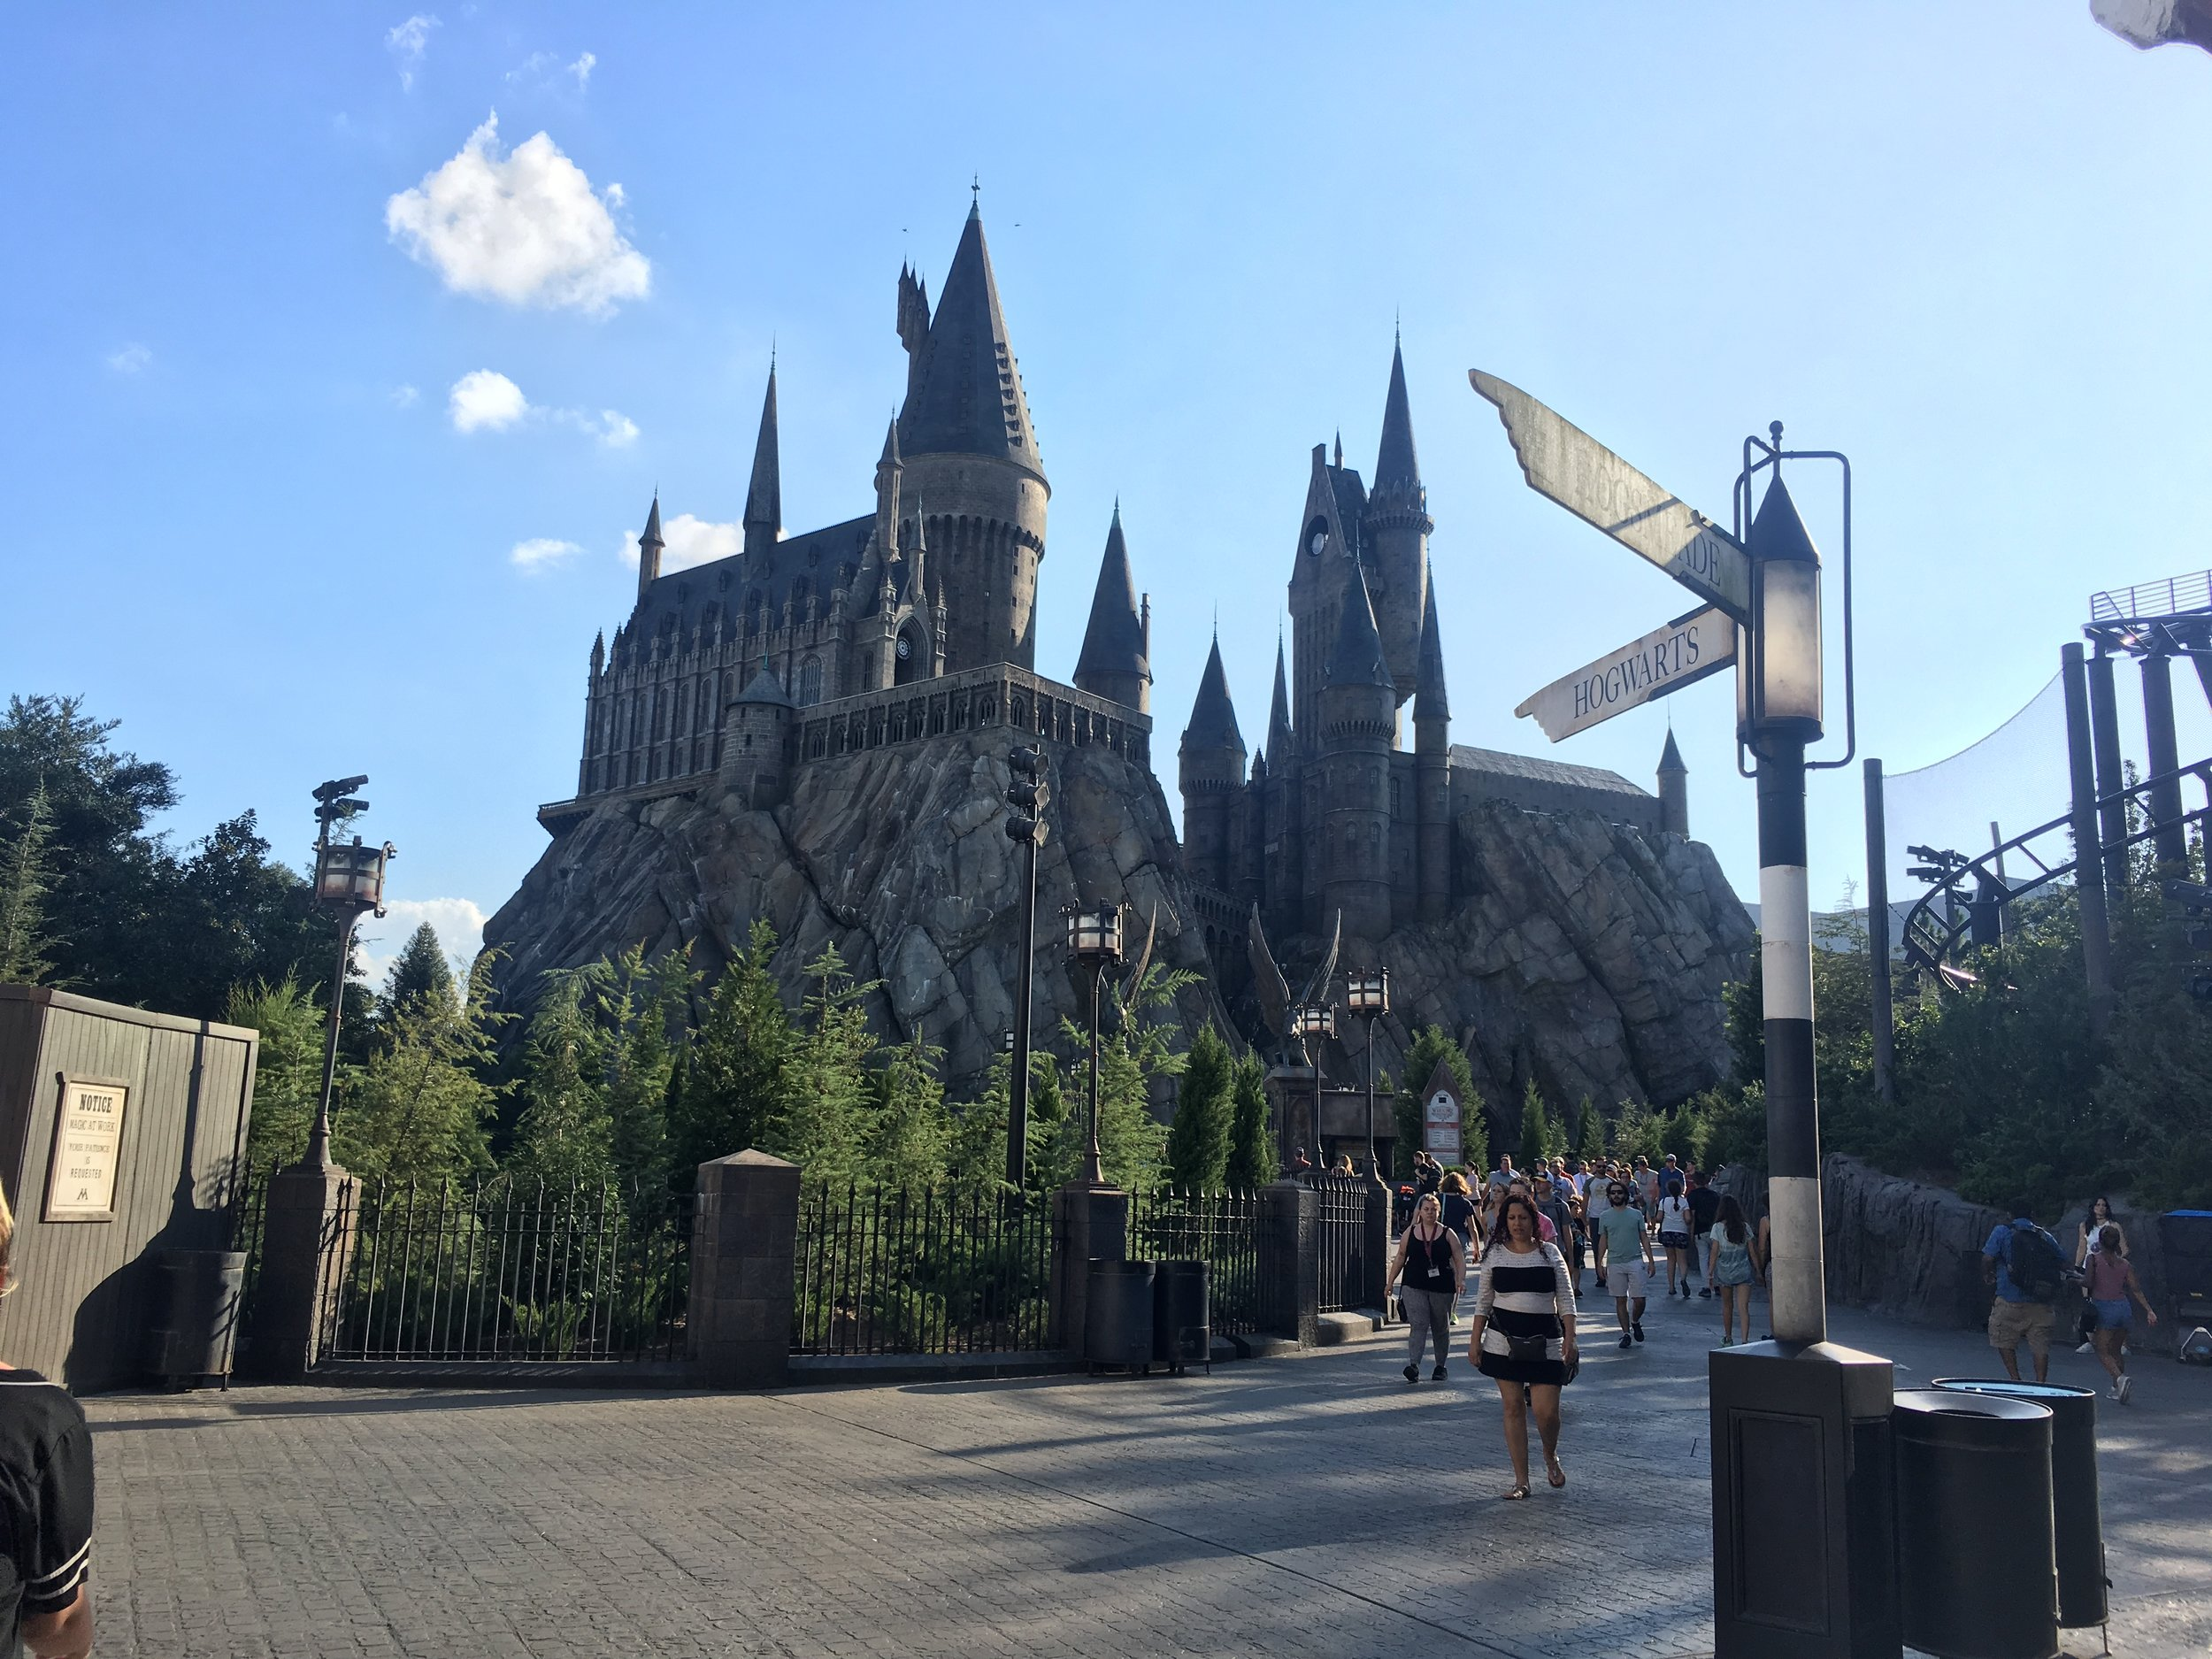 Just another beautiful day at Hogwarts…